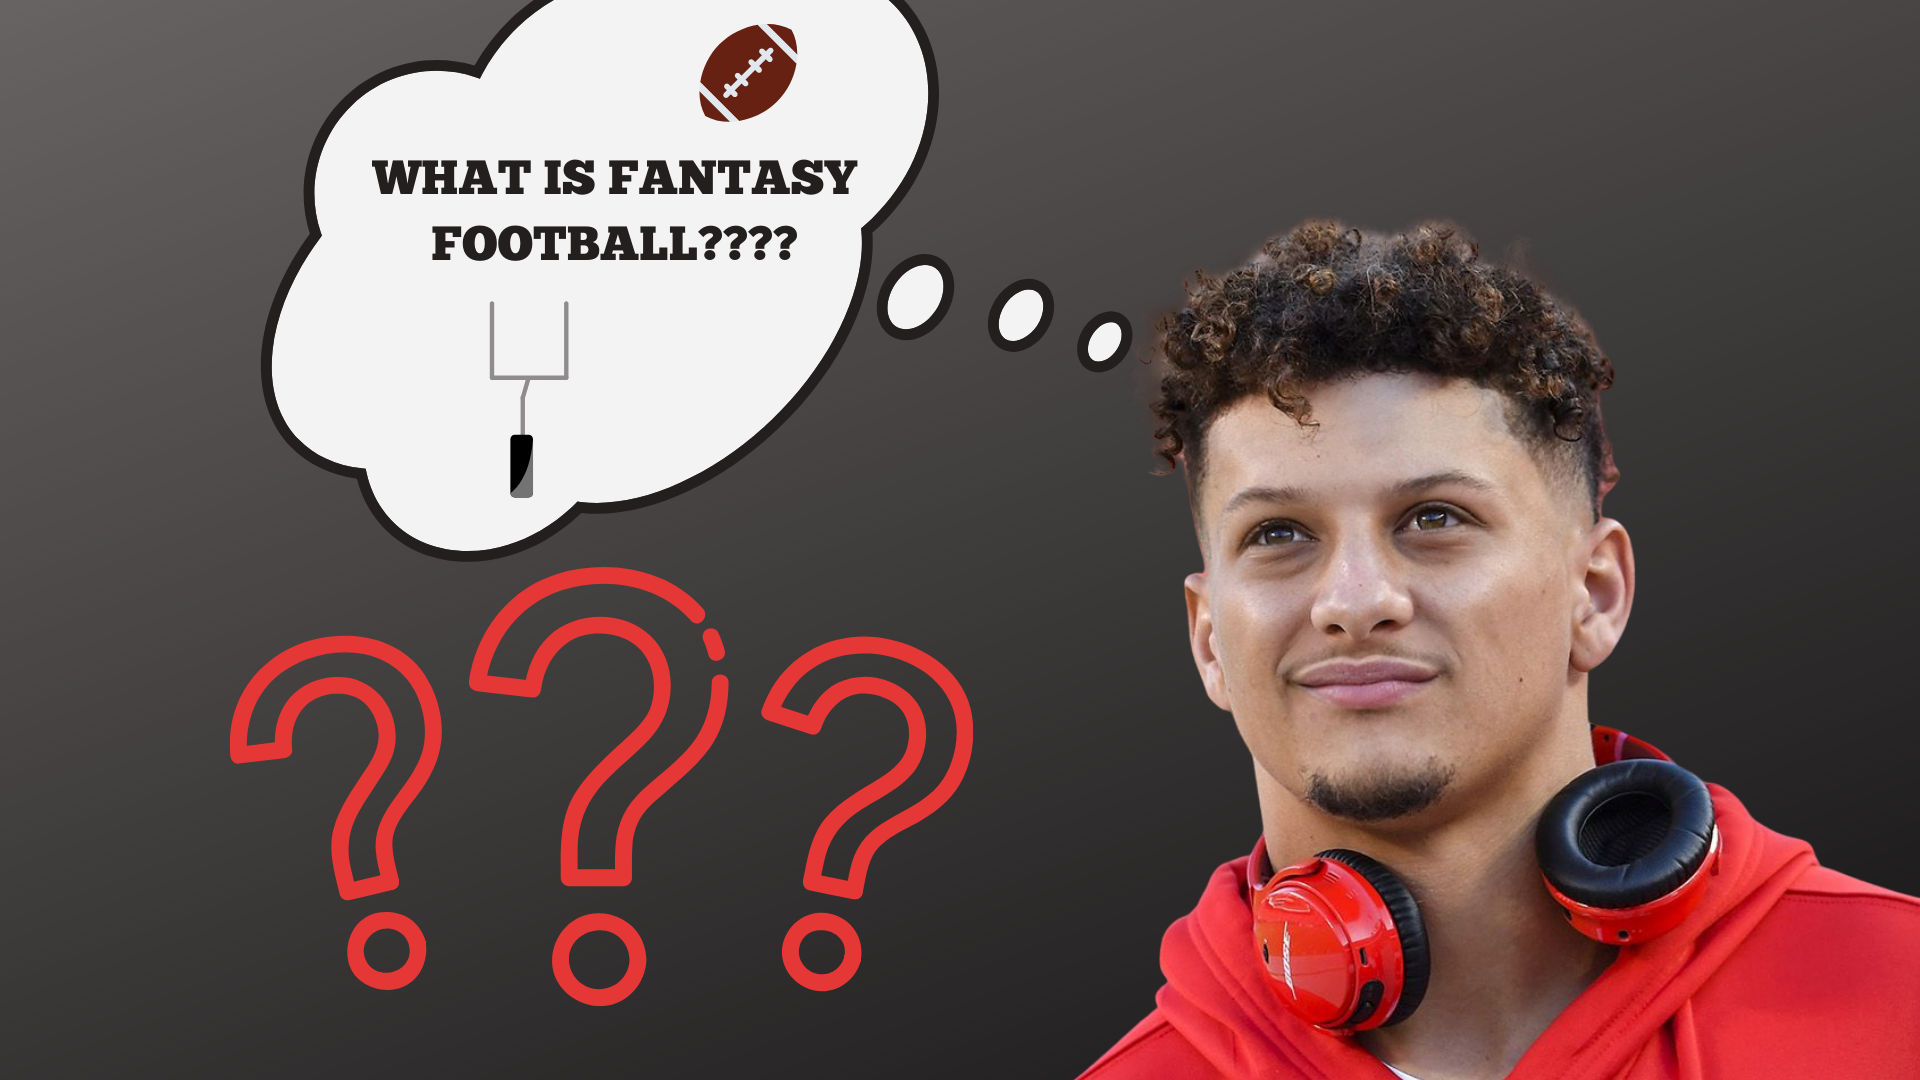 What is Fantasy Football guide